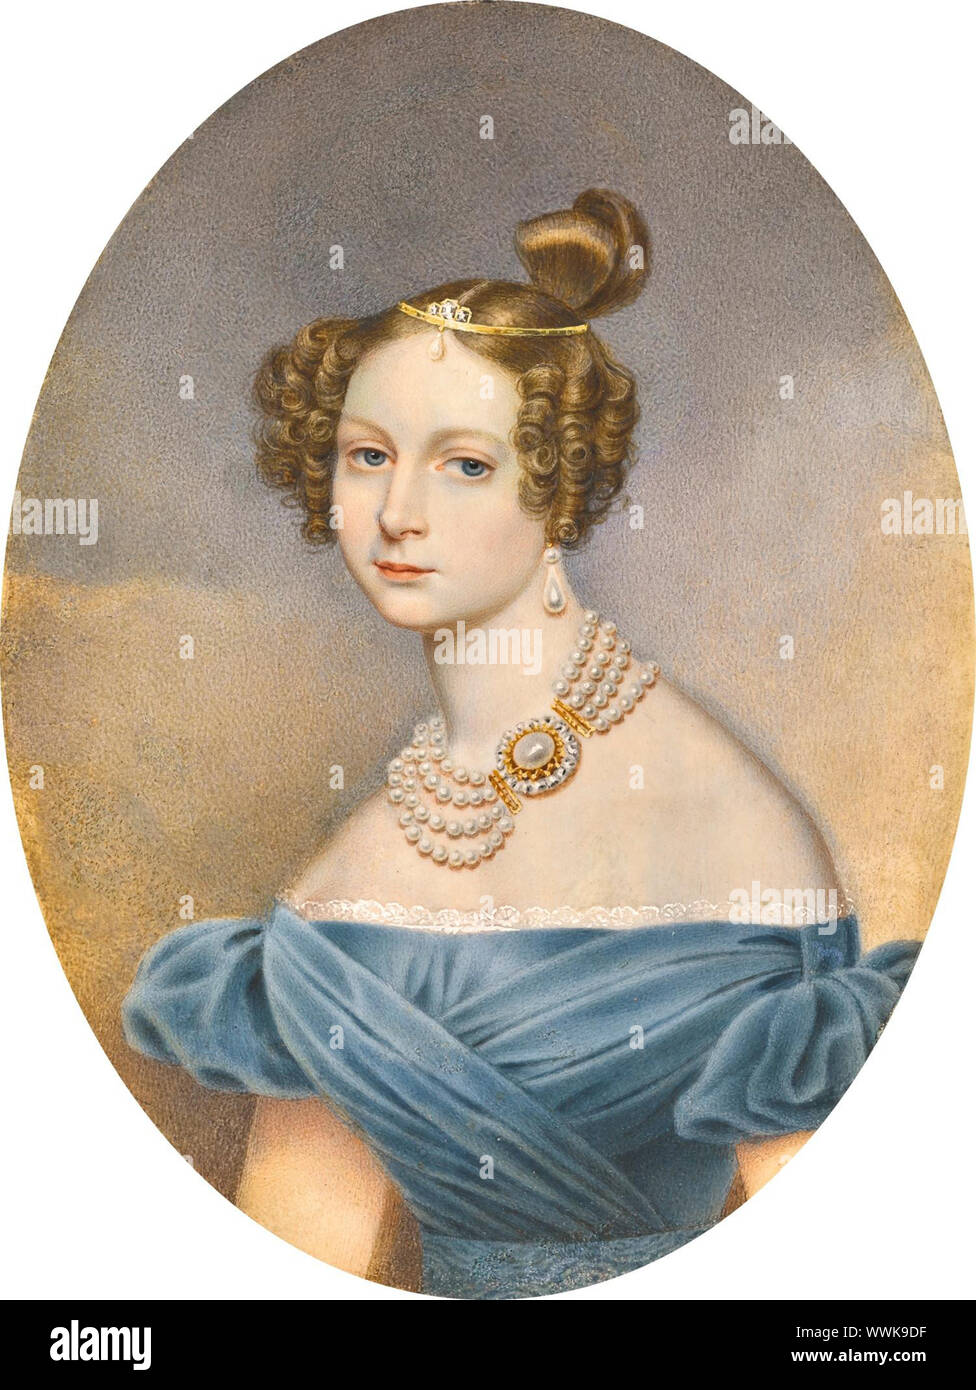 Princess Friederike Charlotte Marie of Württemberg (1807-1873), Grand Duchess Elena Pavlovna of Russia. Private Collection. Stock Photo